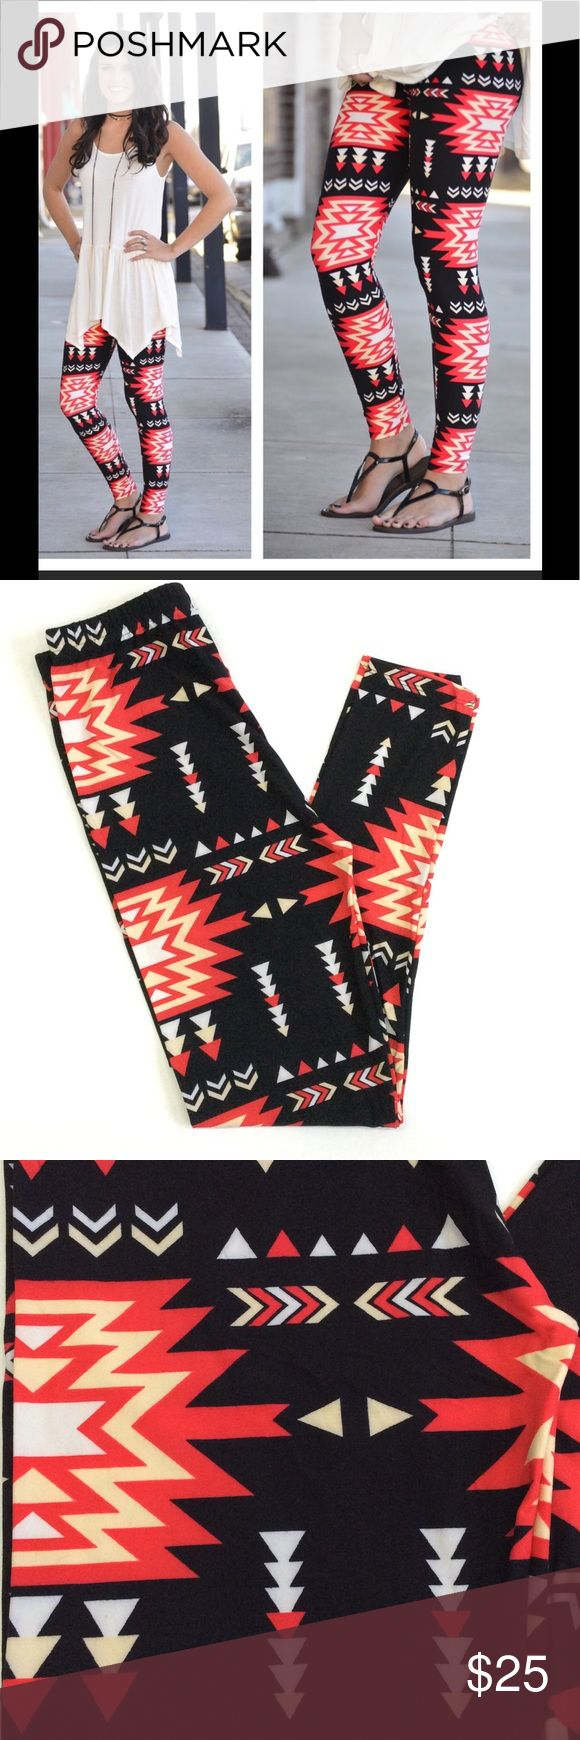 Infinity Raine Flaming Aztec Print Leggings Buttery soft lively aztec print leggings designed by Infinity Raine.  92% Polyester 8% Spandex.  One size fits sizes 2-12 comfortably. Infinity Raine Pants Leggings